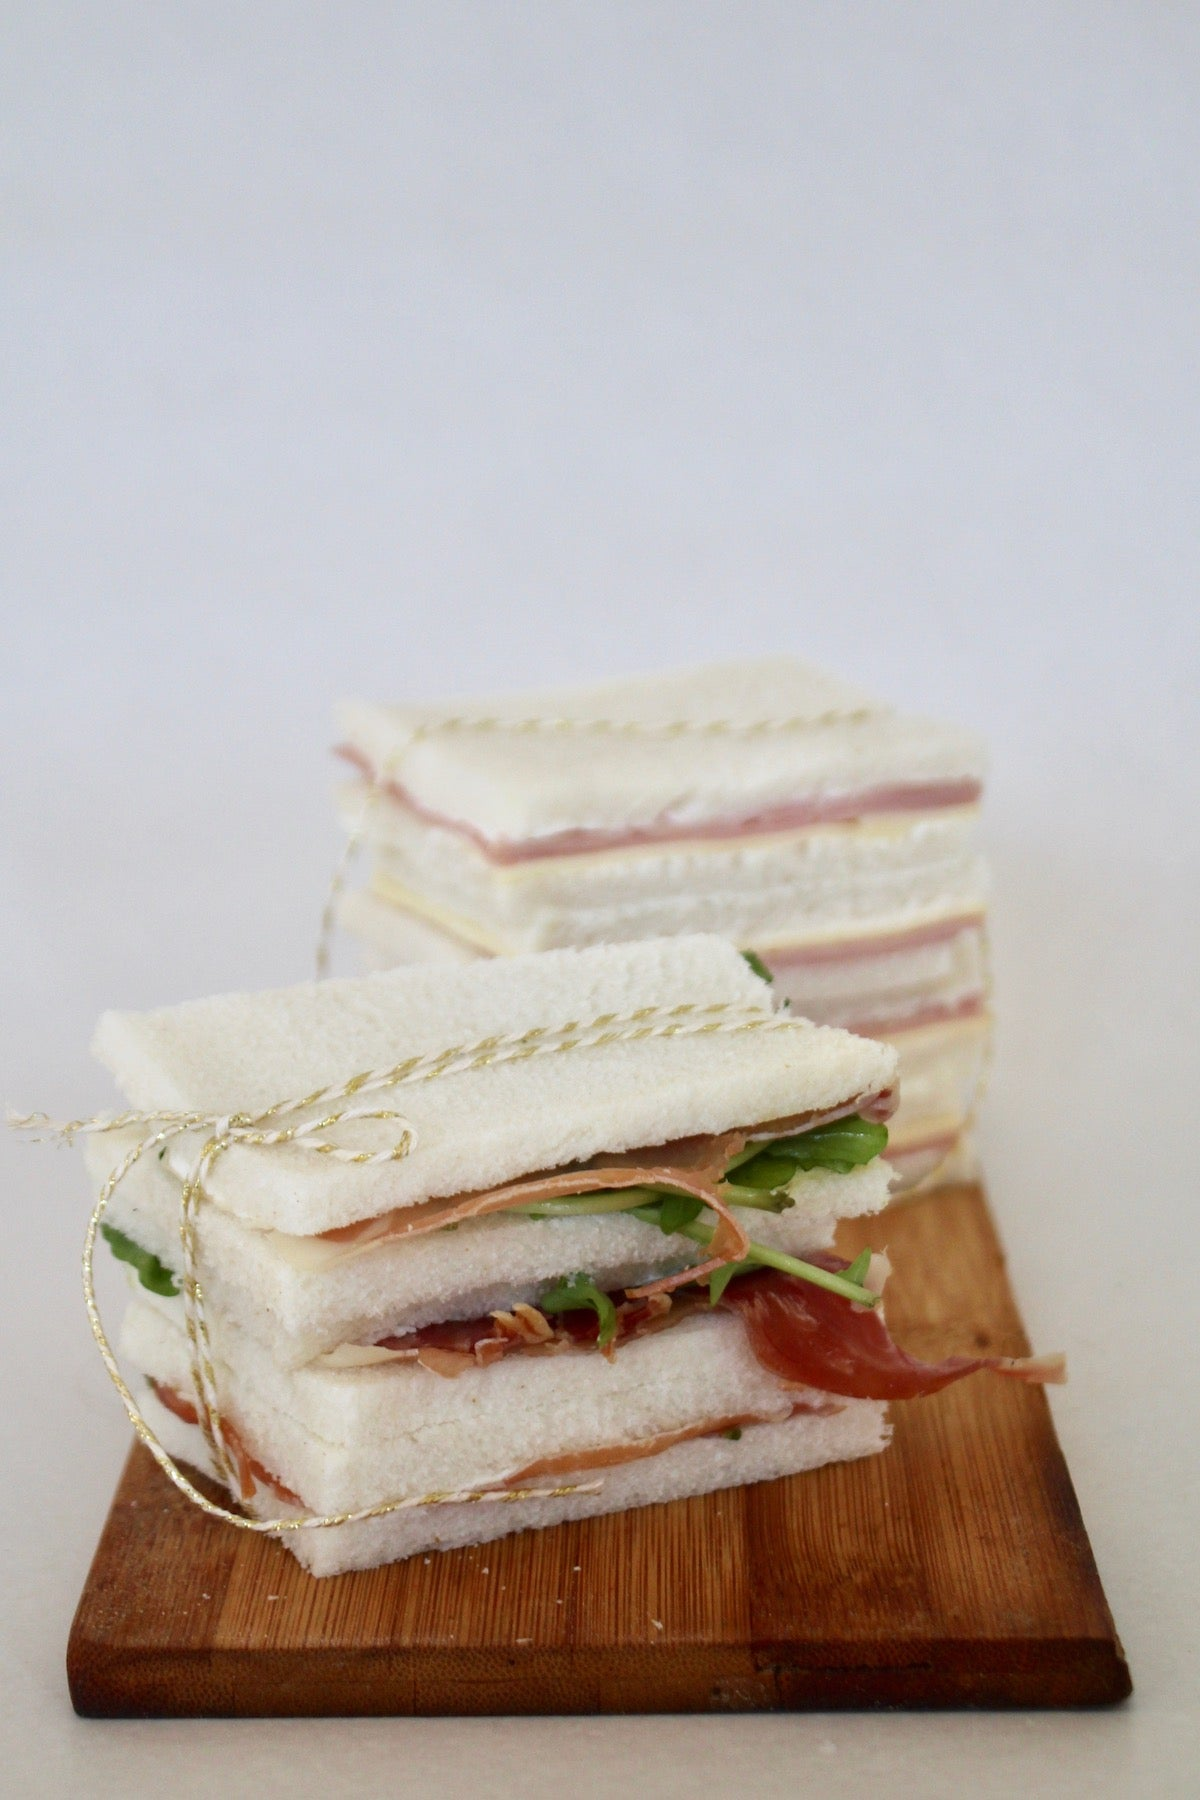 Sandwichitos de pan de miga